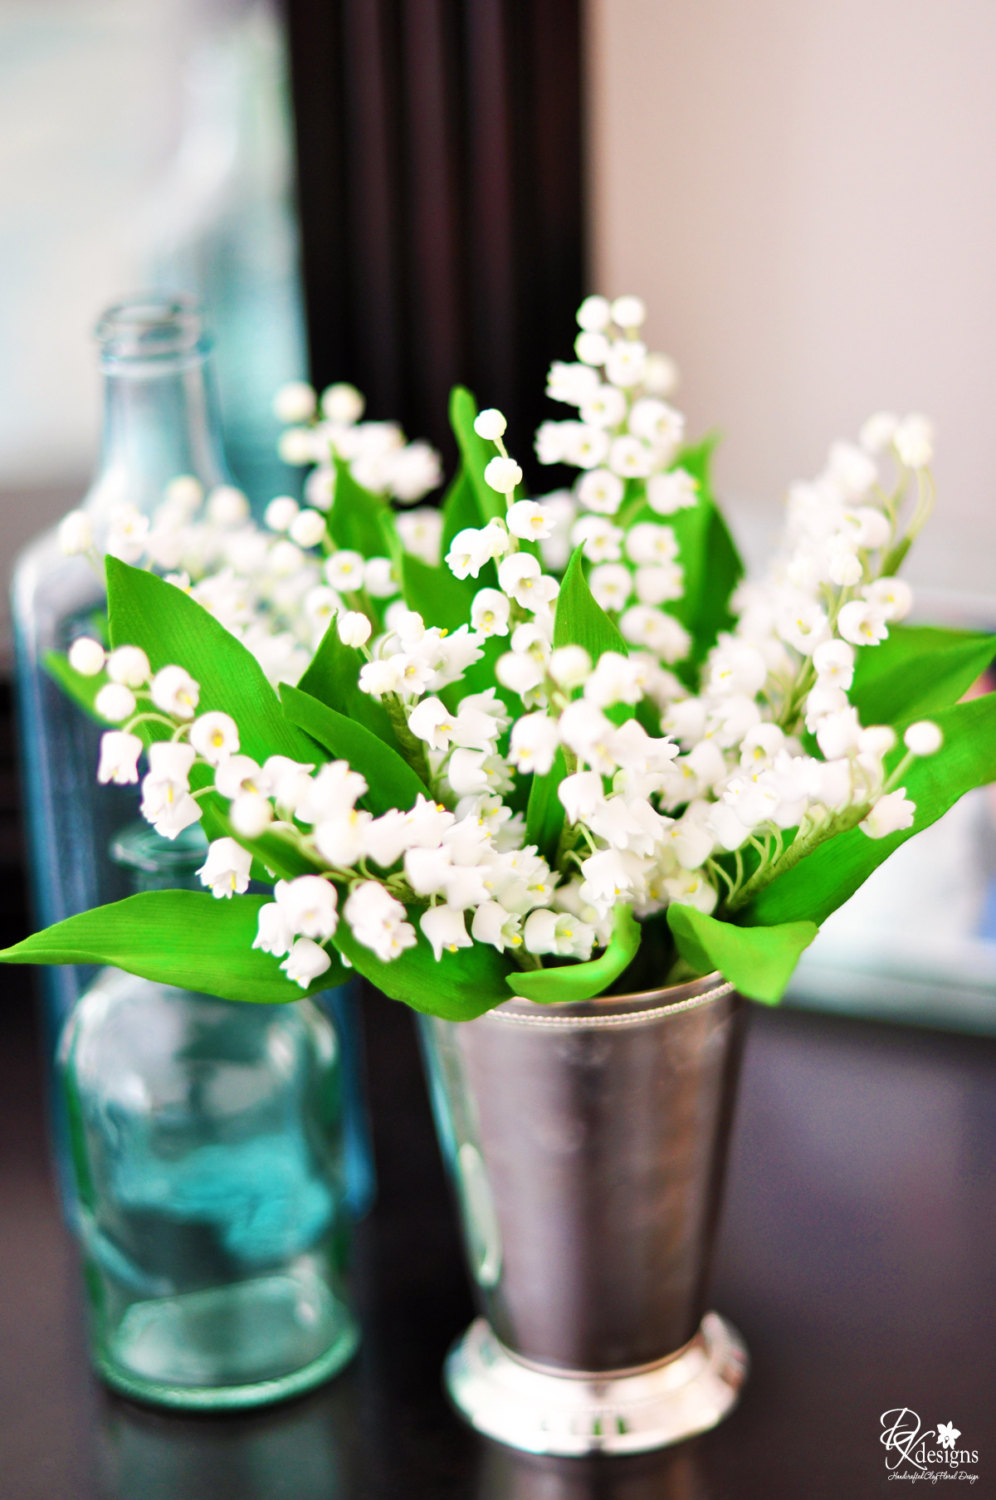 Lily of the Valley Flowers in a Sterling Silver Mint Julep Cup from DK Designs